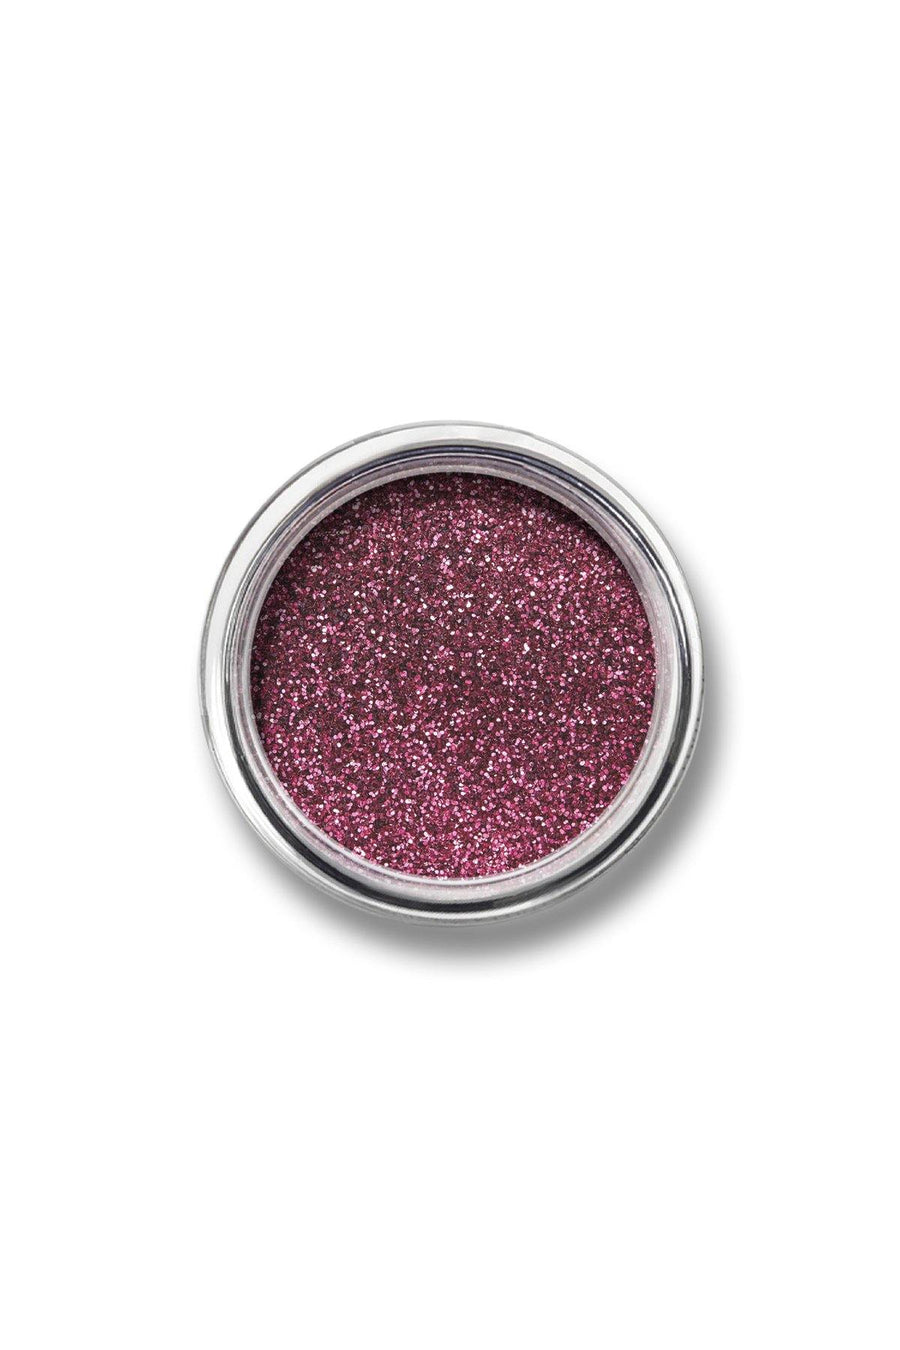 Glitter Powder #11 - Deep Rose Pink - Blend Mineral Cosmetics